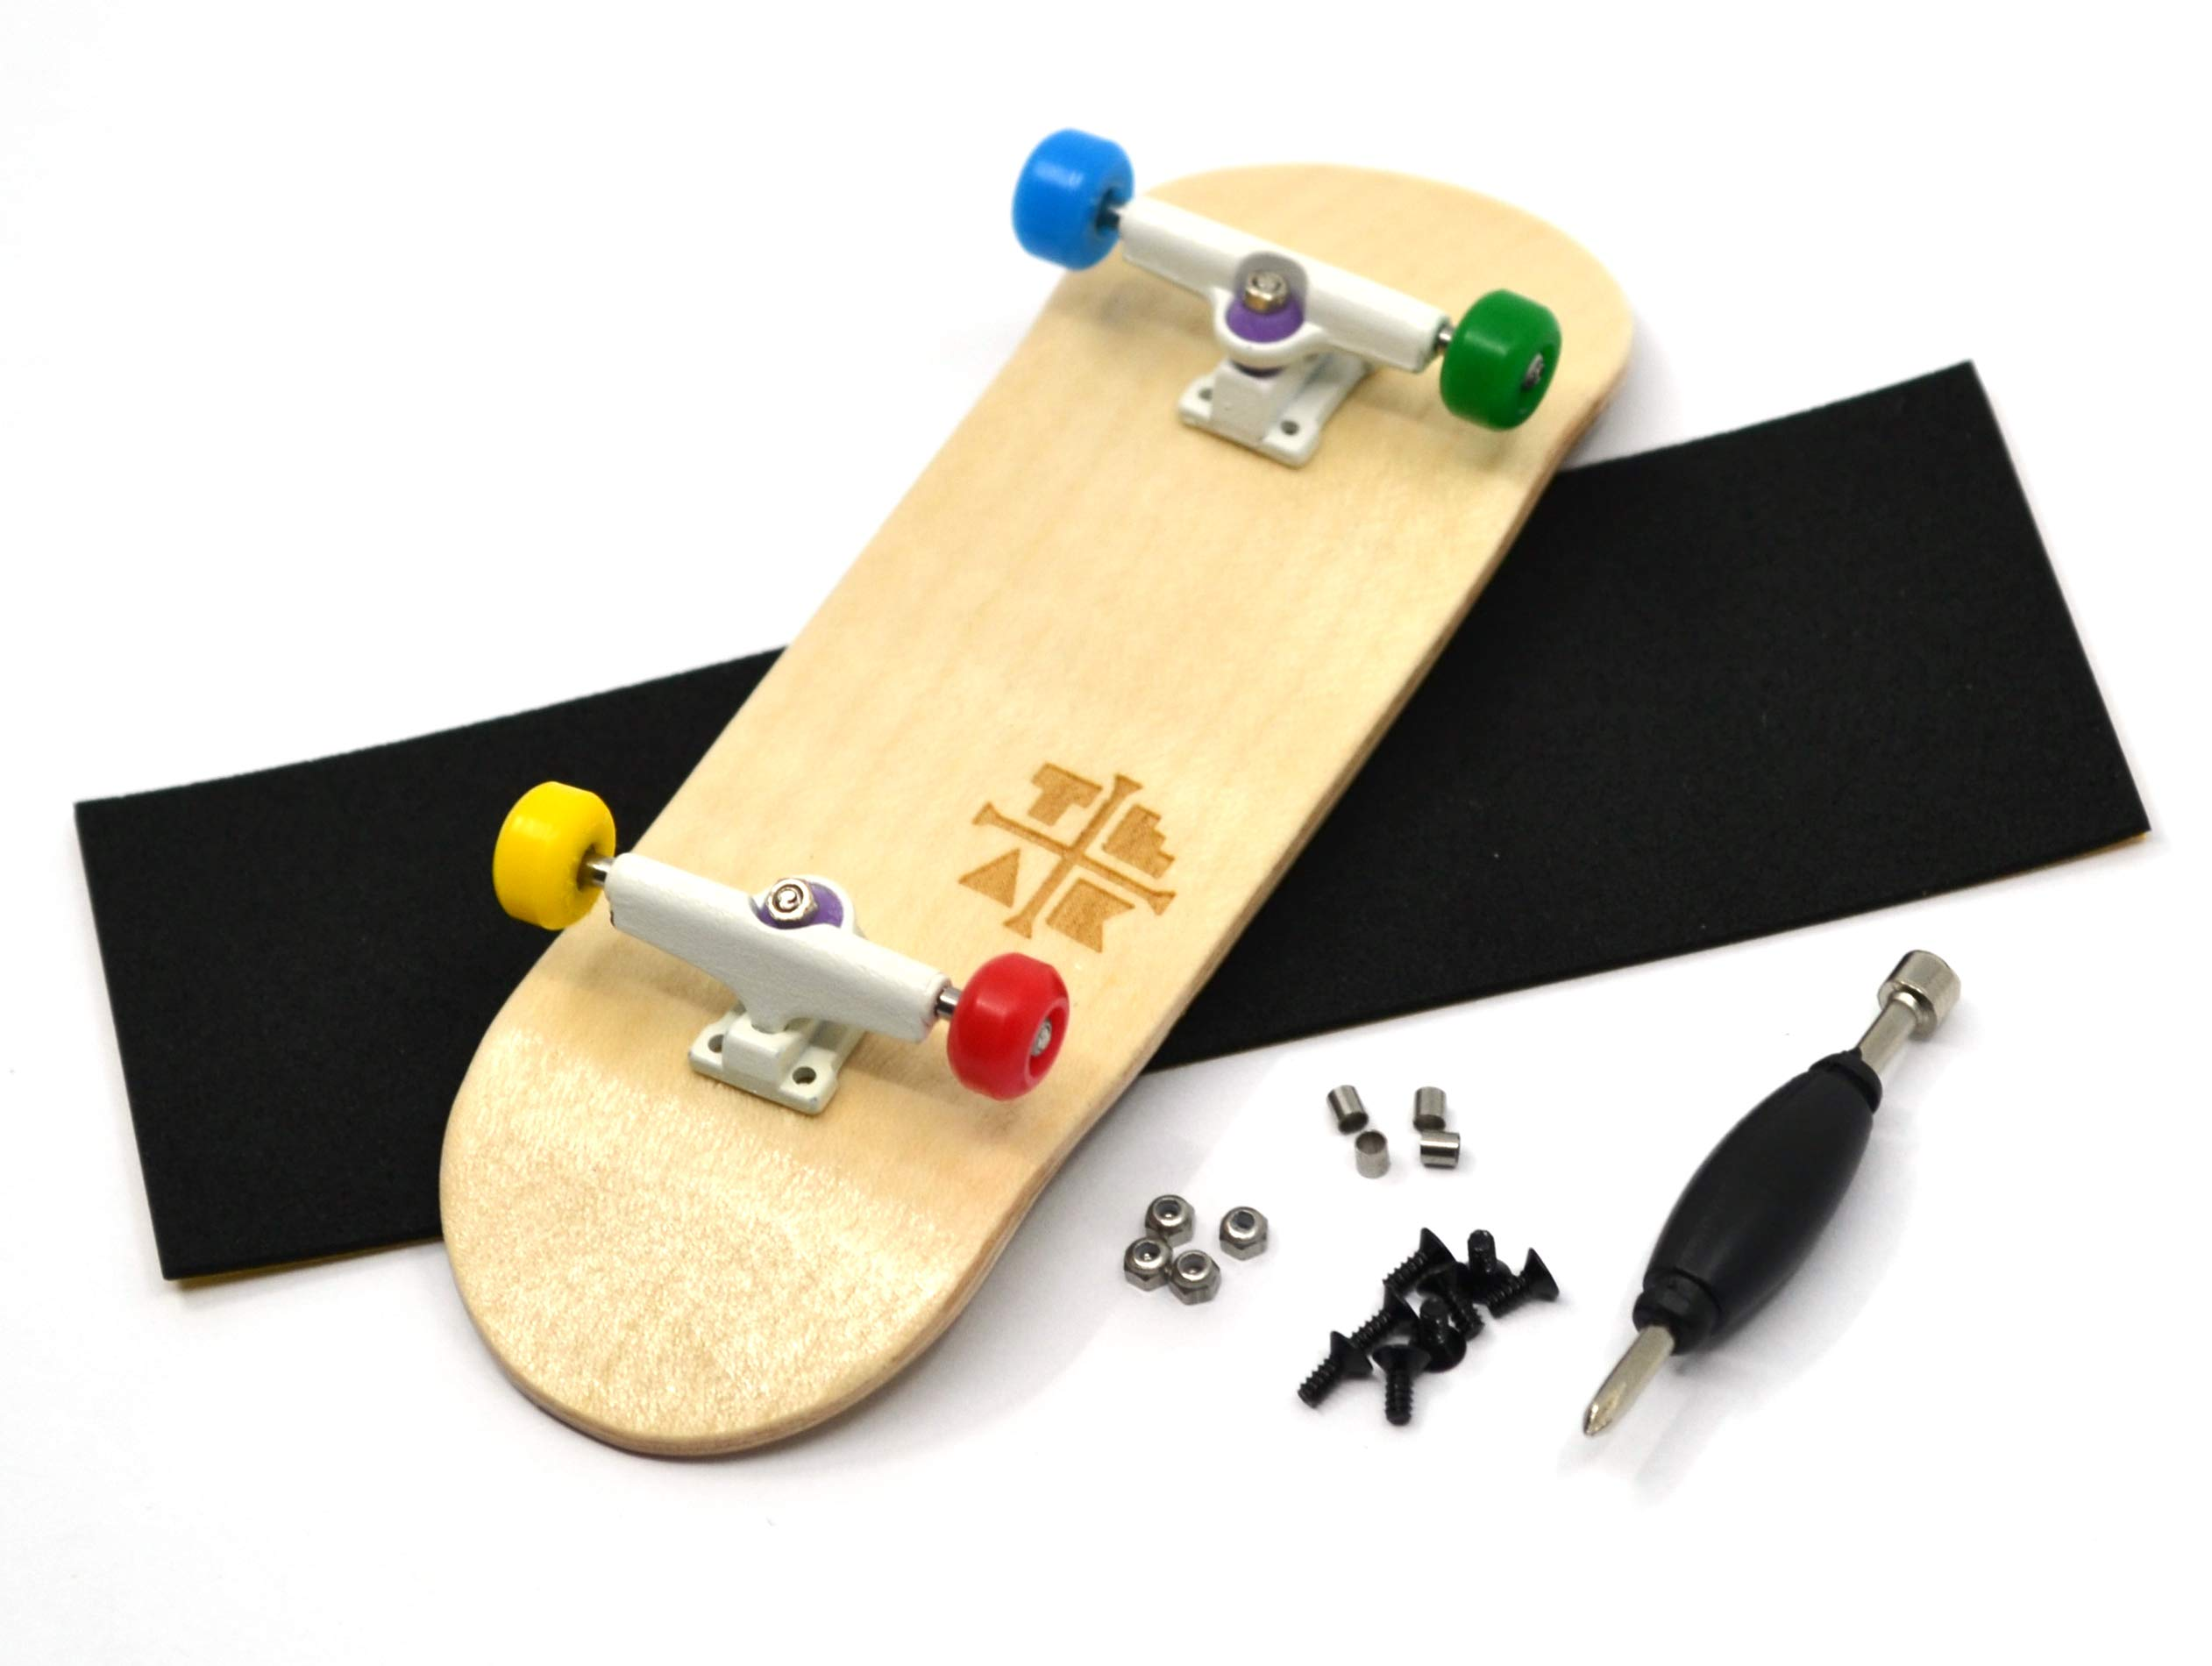 PROlific Complete Fingerboard with Upgraded Components - Pro Board Shape and Size, Bearing Wheels, Trucks, and Locknuts - 32mm x 97mm Handmade Wooden Board - Everything is Awesome Edition by Teak Tuning